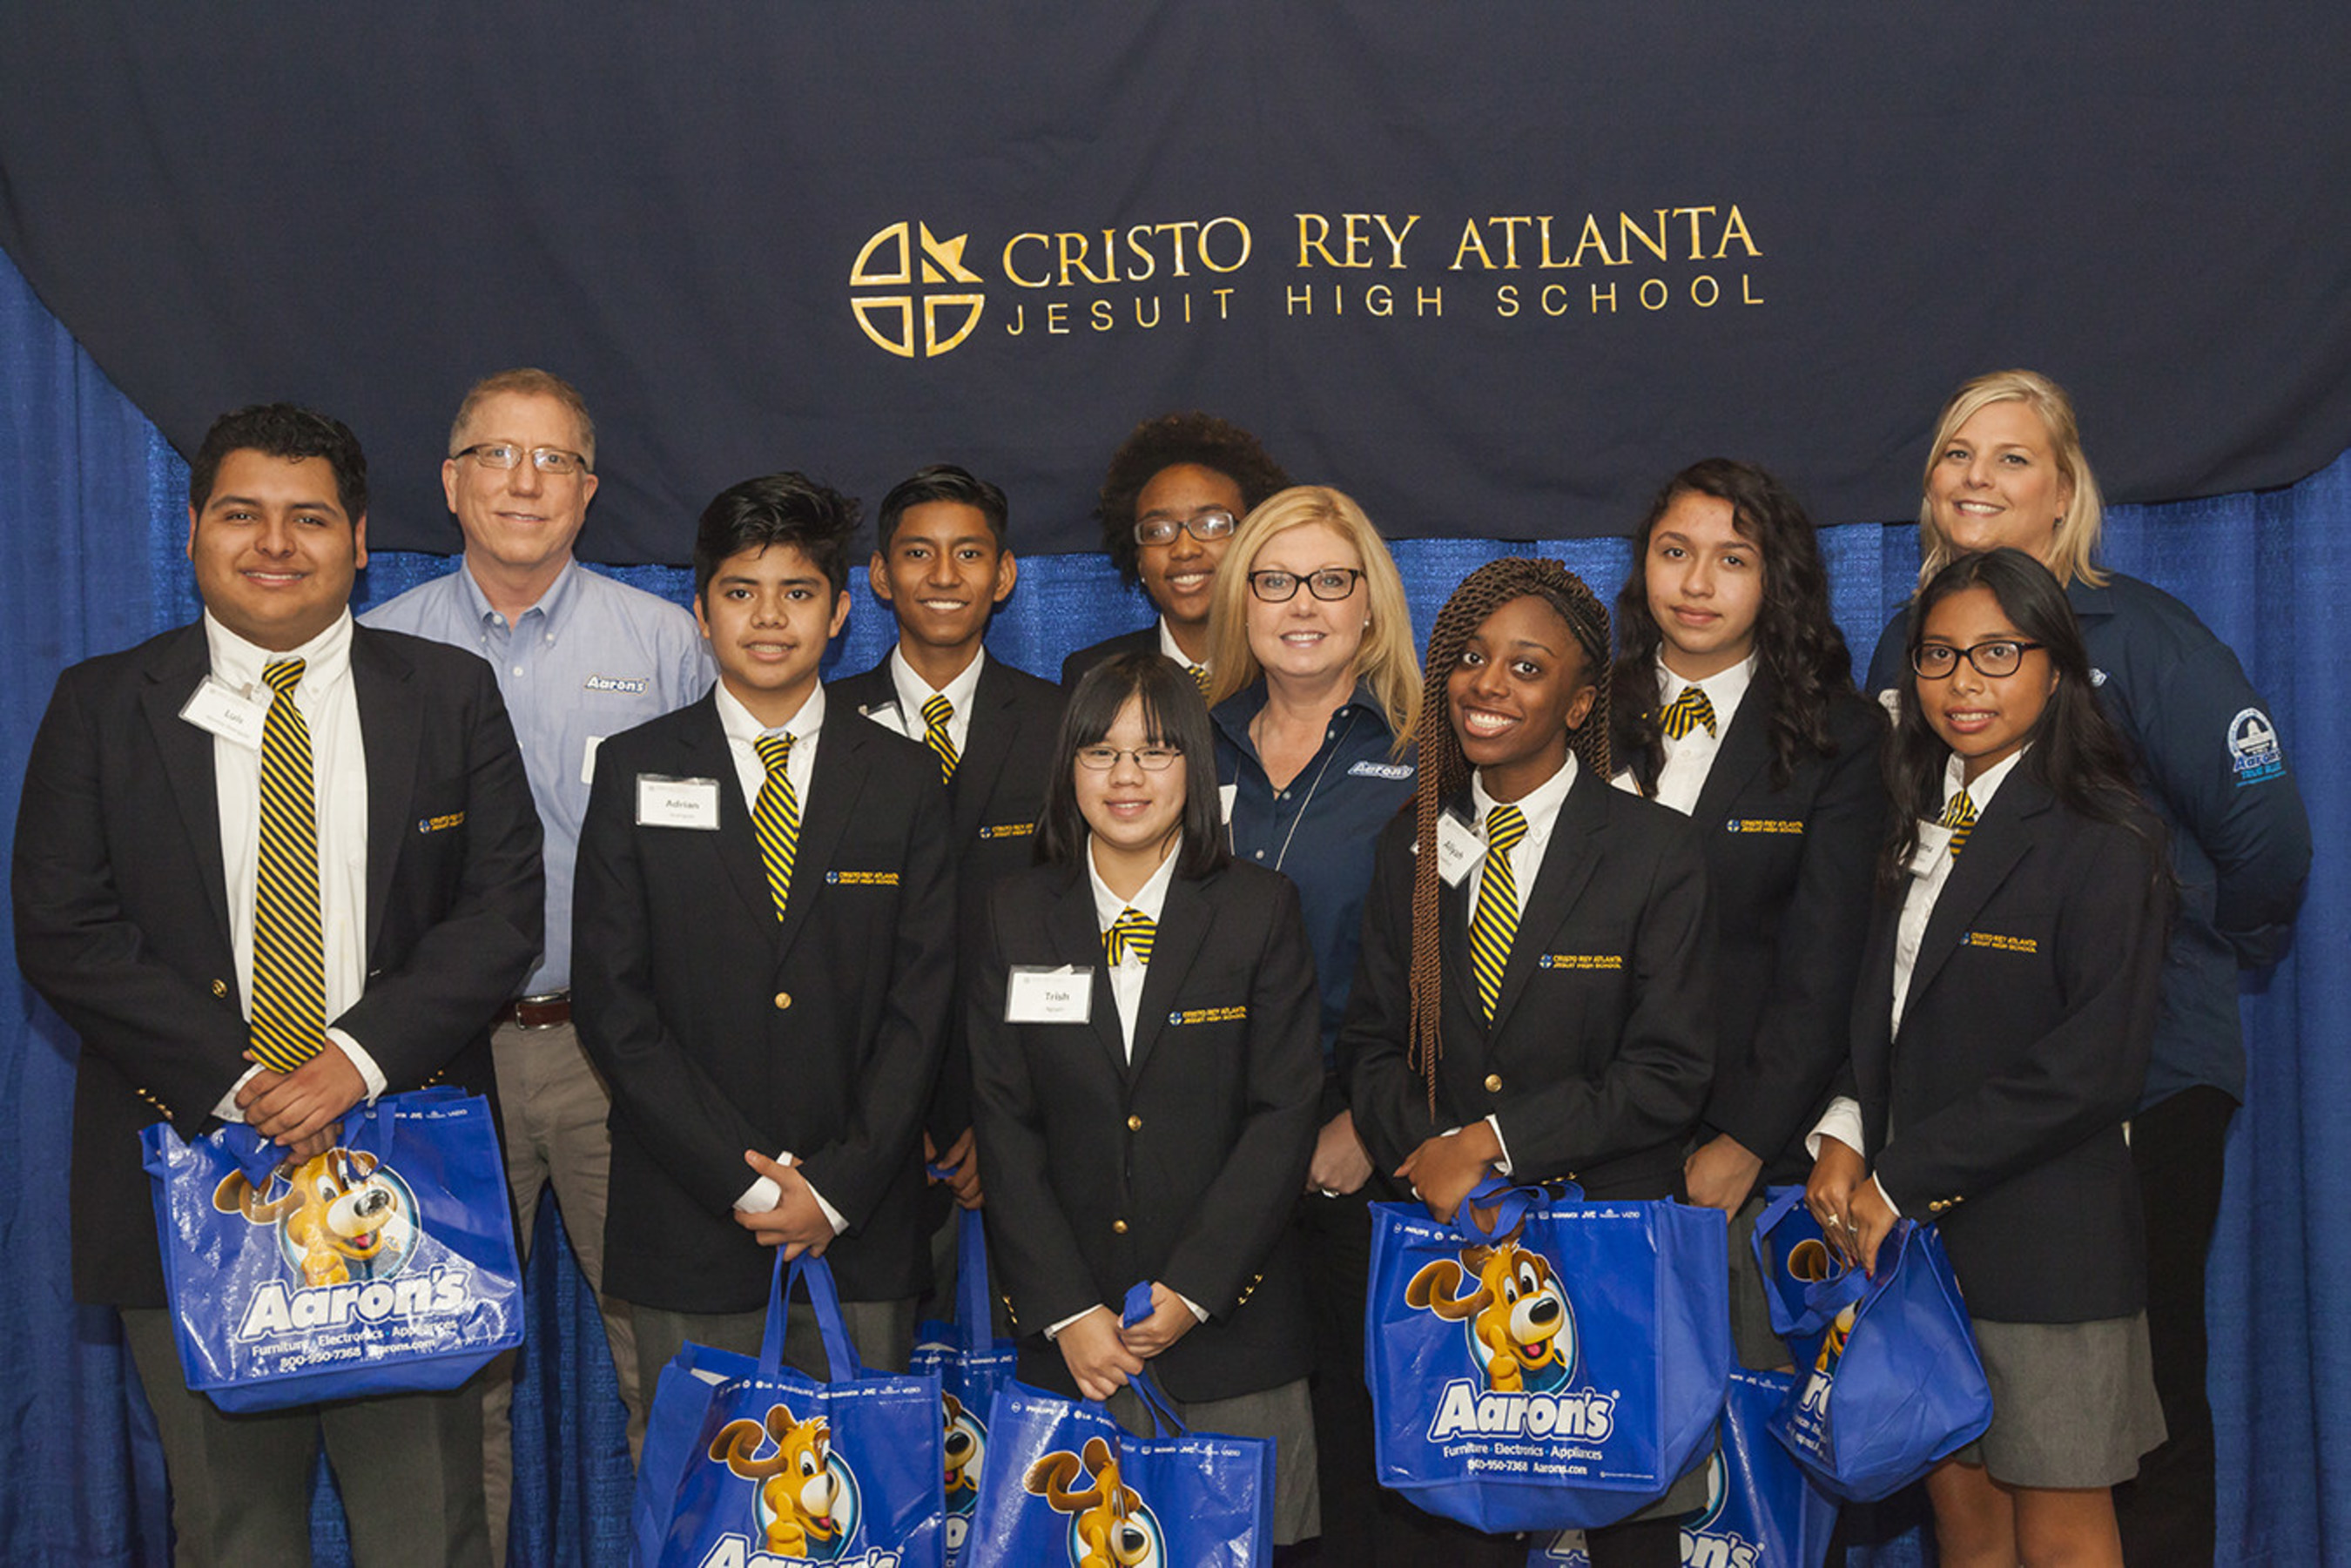 Aaron's Hosts Corporate Work Program For Atlanta Cristo Rey Students